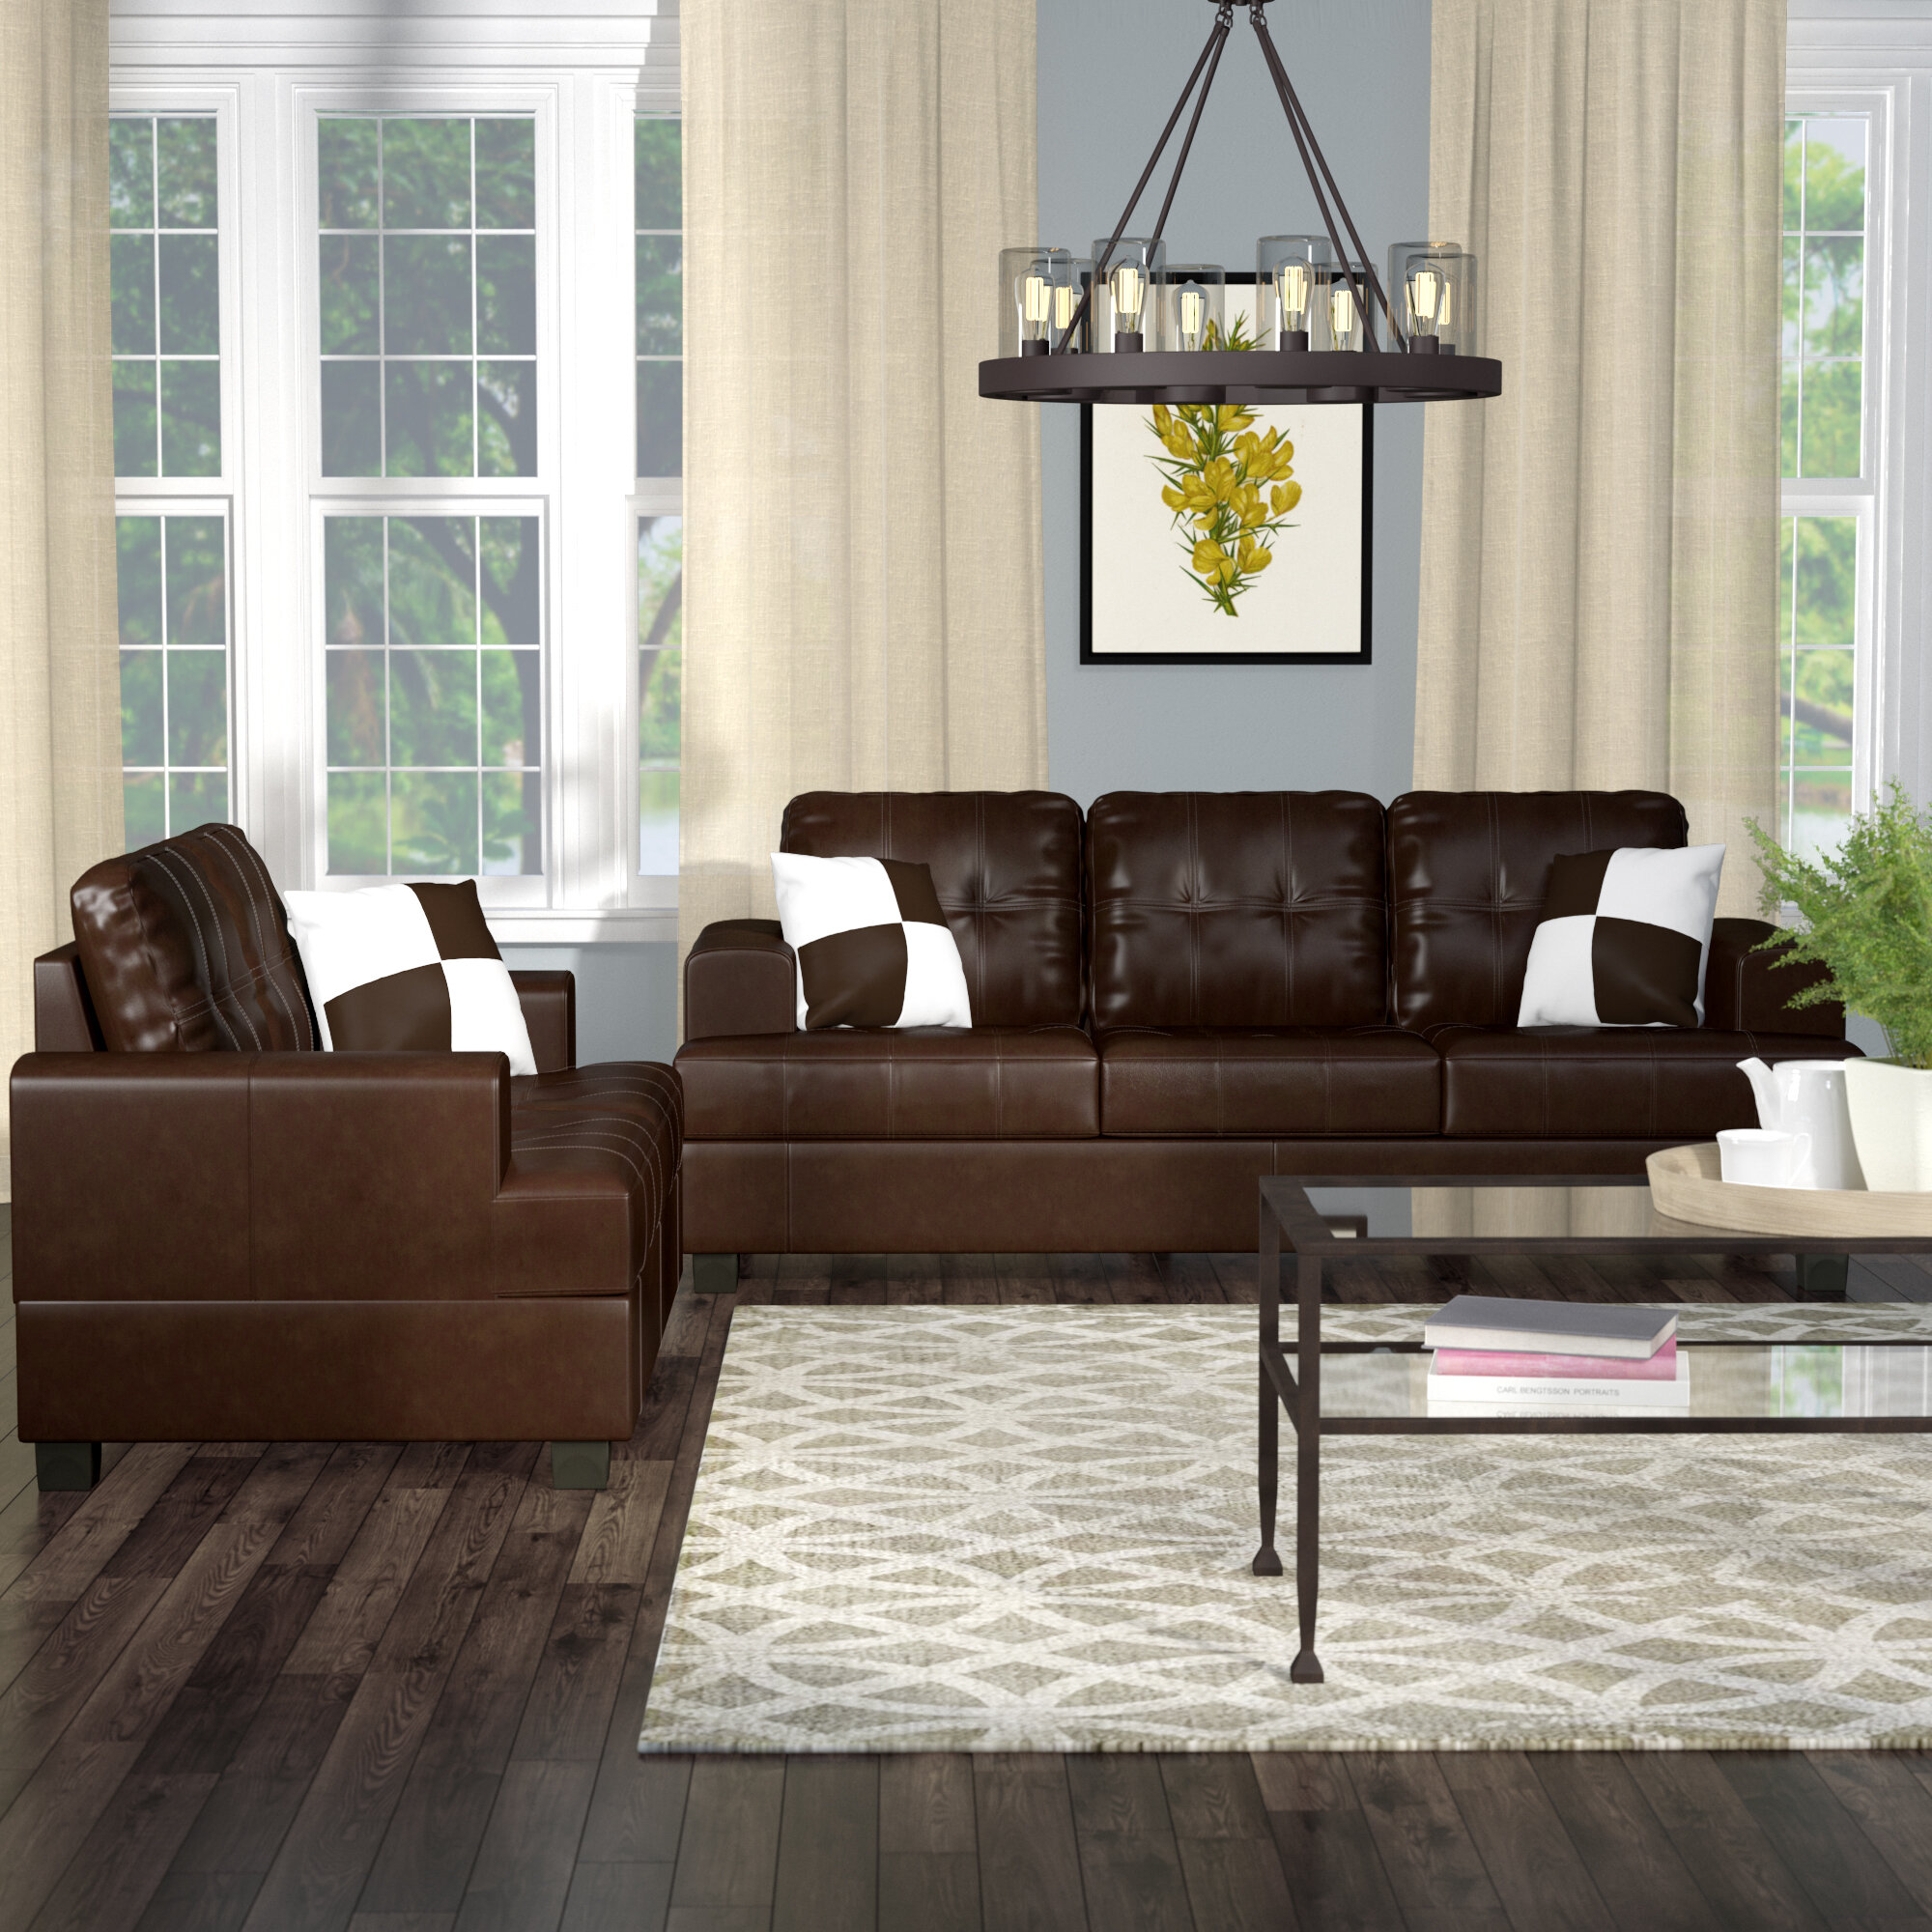 Fabulous Wamsutter 2 Piece Living Room Set Lamtechconsult Wood Chair Design Ideas Lamtechconsultcom